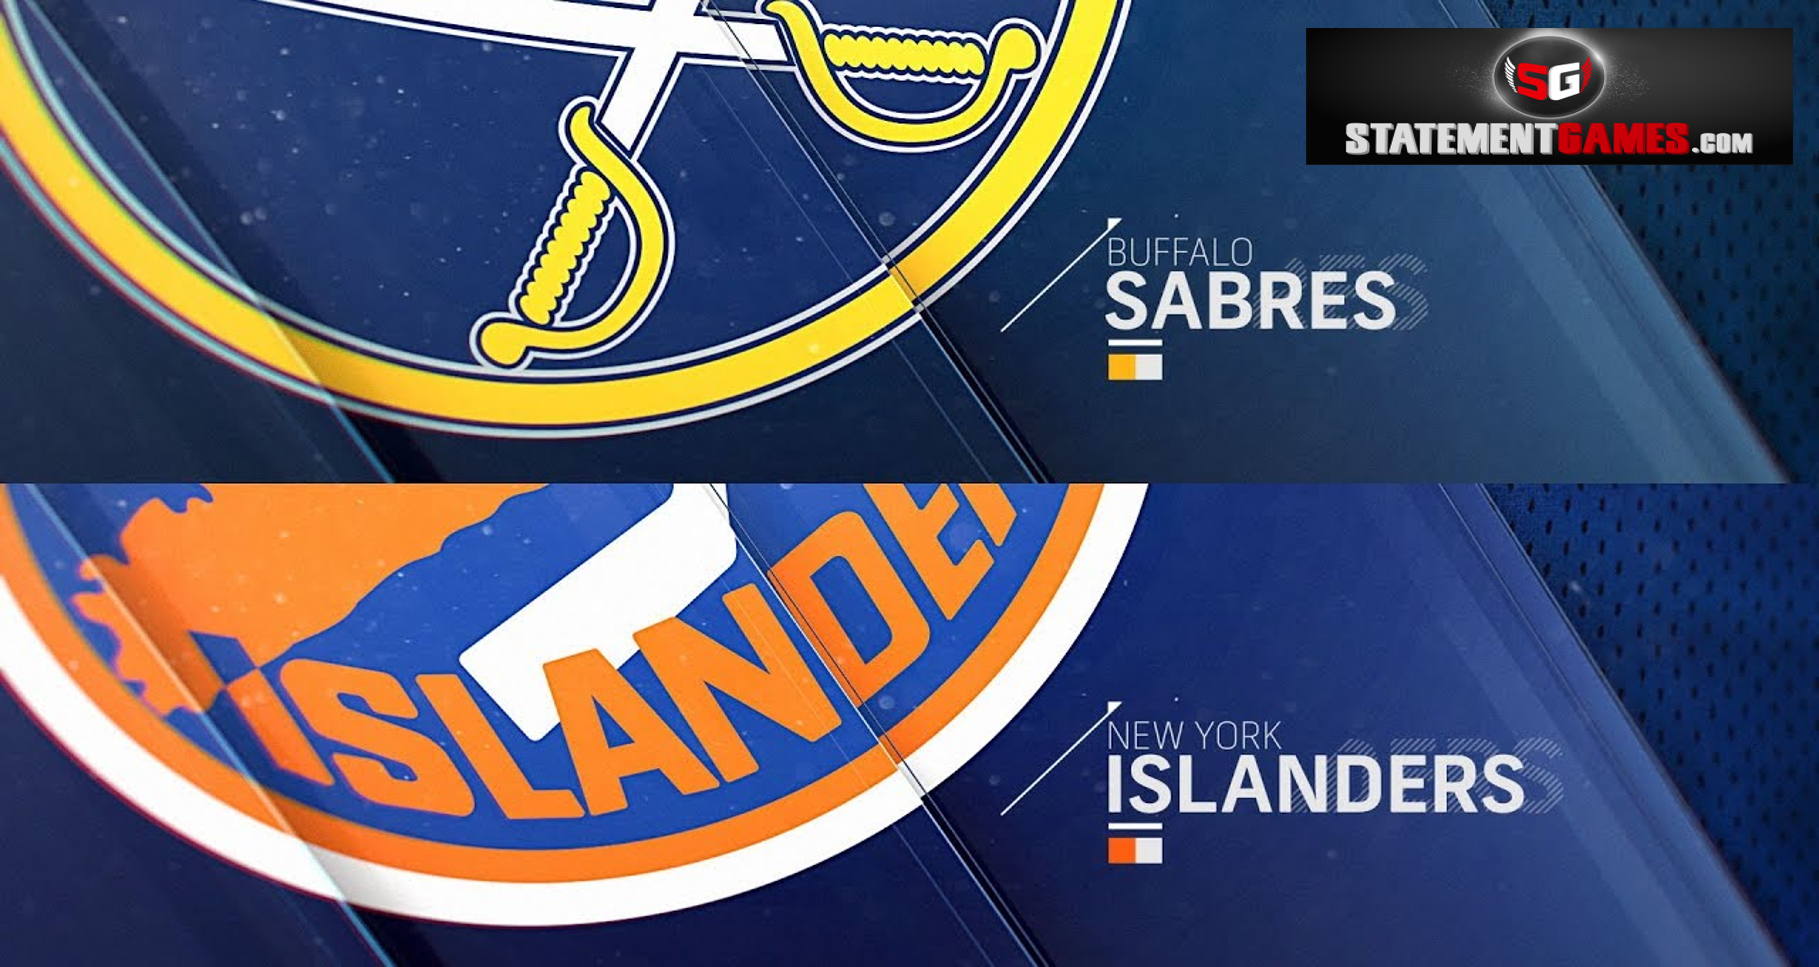 Buffalo Sabres Vs New York Islanders – NHL Game Day Preview: 02.02.2021